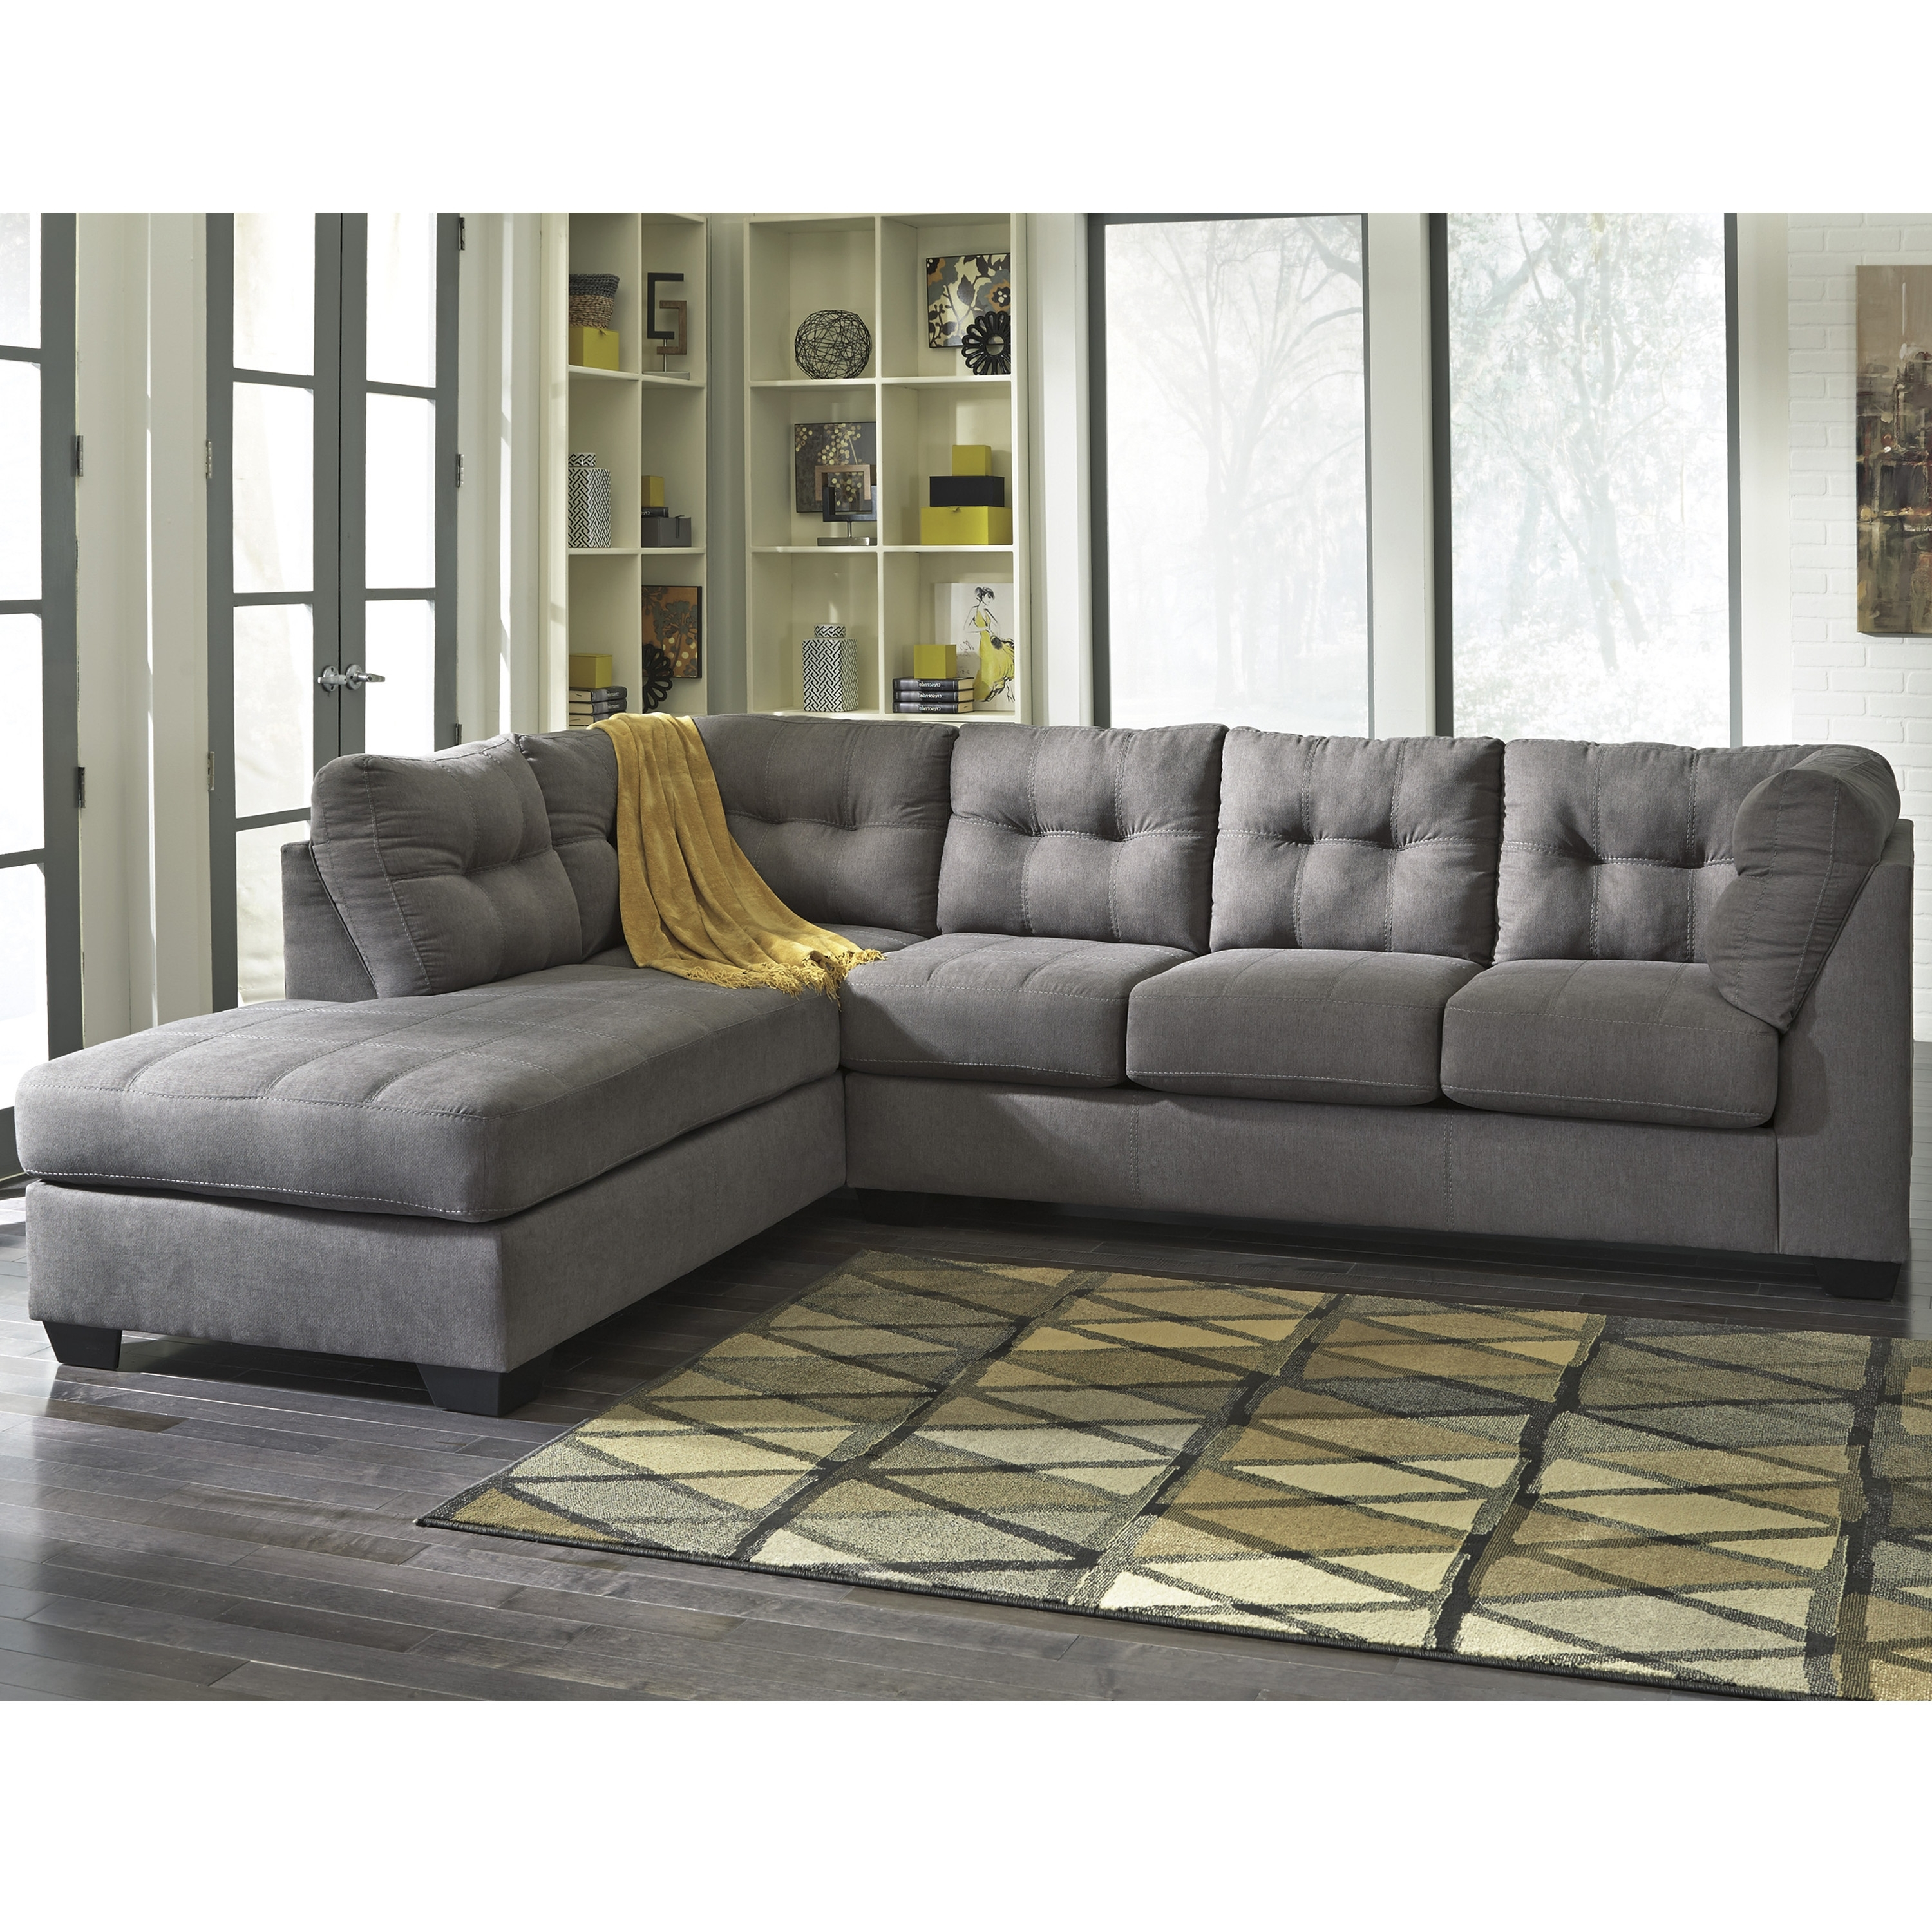 Furniture: Cool Cheap Sectional For Elegant Living Room Design Intended For Lucy Grey 2 Piece Sectionals With Laf Chaise (View 15 of 25)